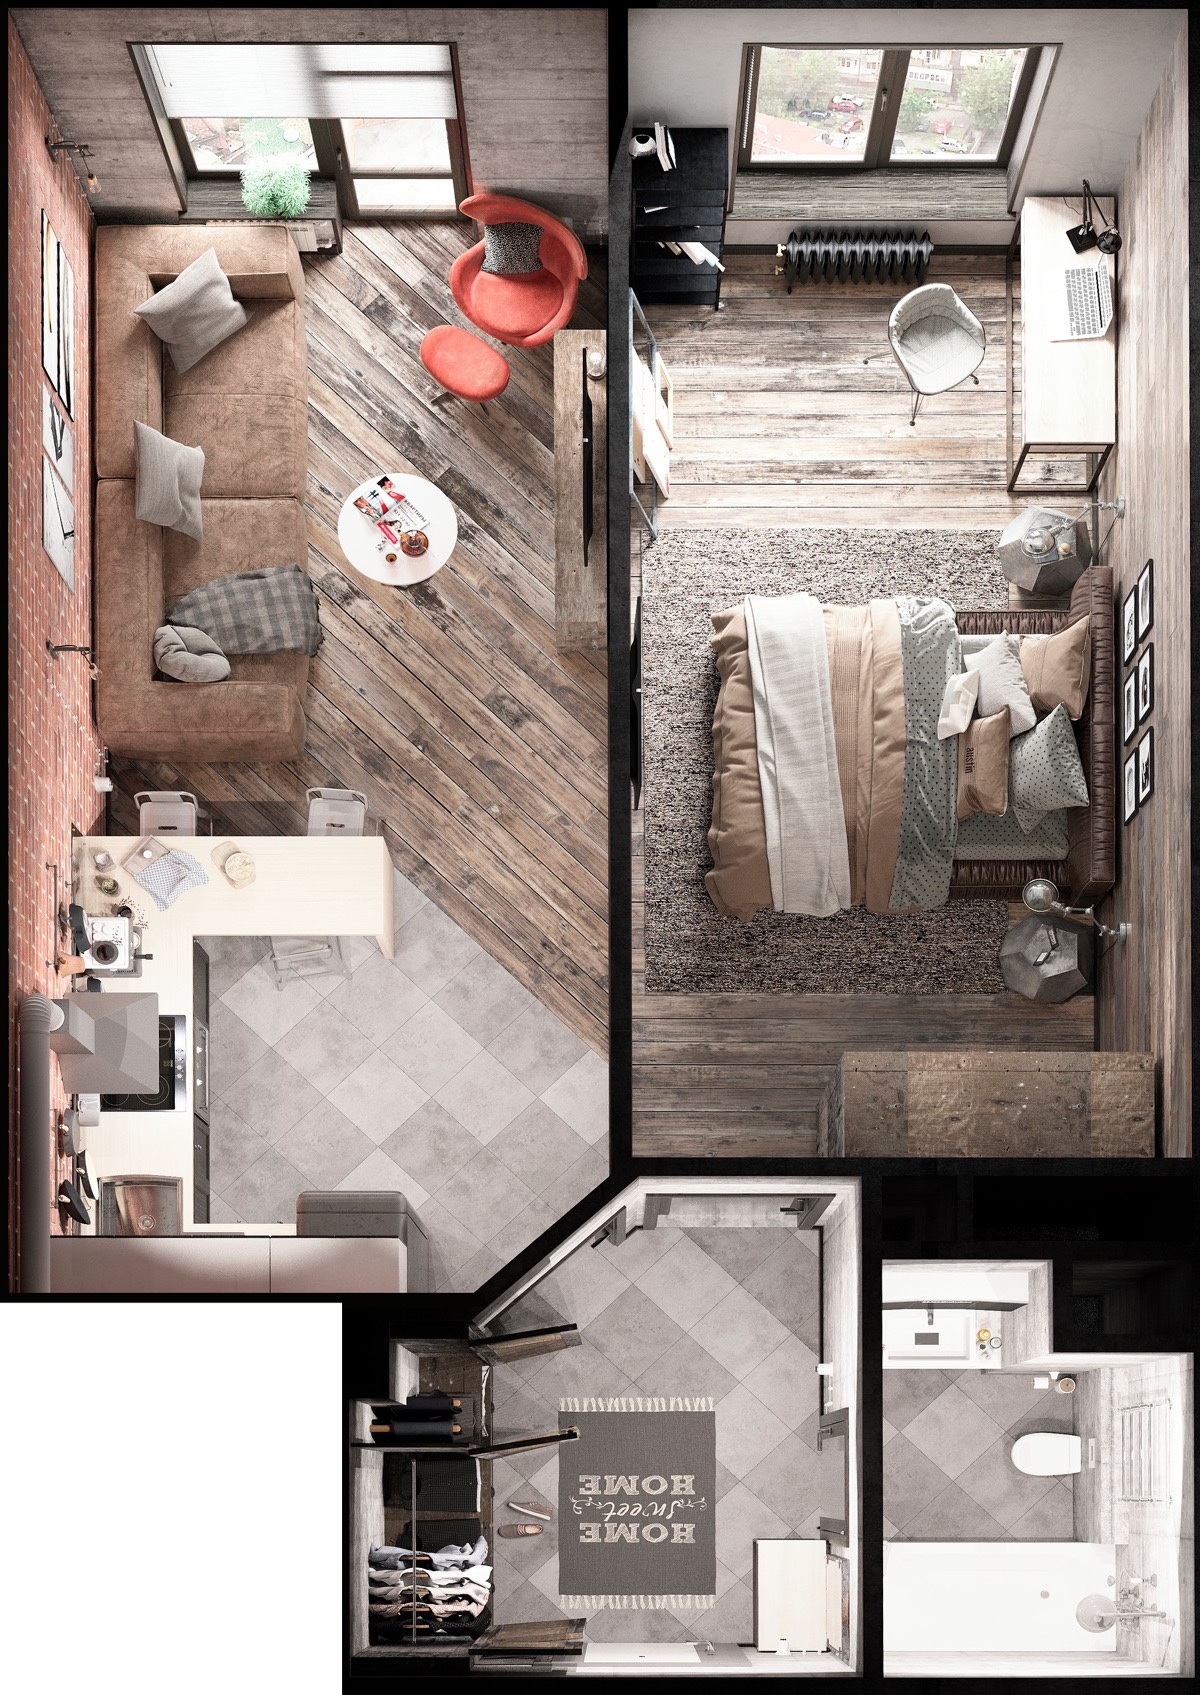 Floor Tiles Design For Small House Bold Decor In Small Spaces 3 Homes Under 50 Square Meters